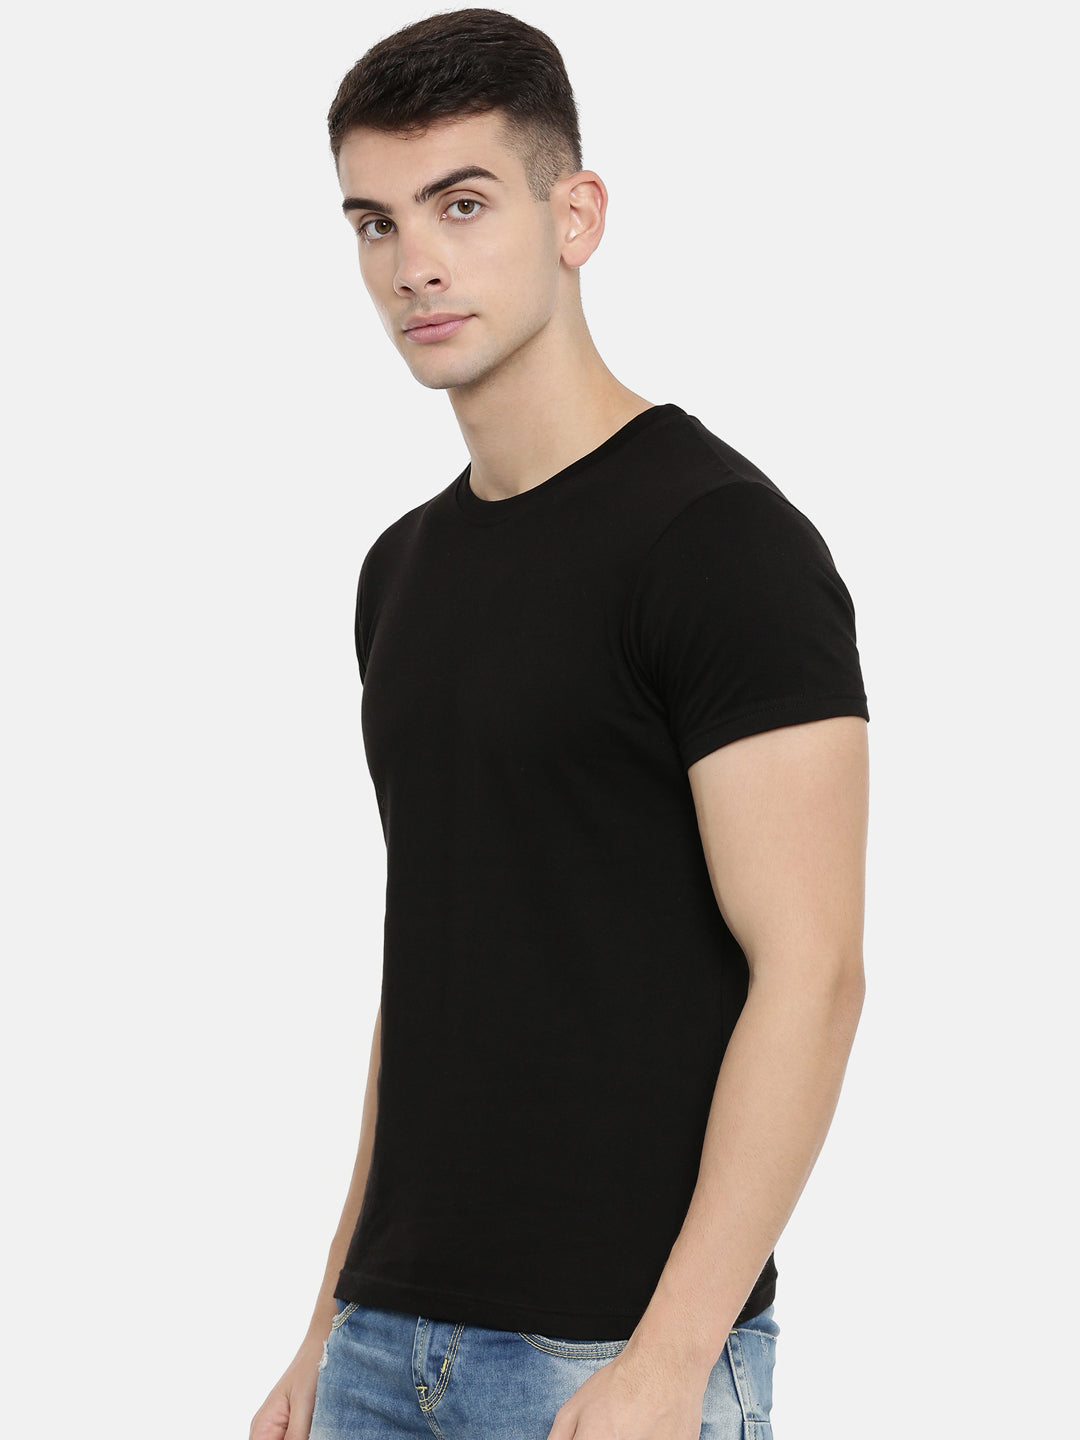 Black Round Neck Half Sleeve T-shirt Baromin